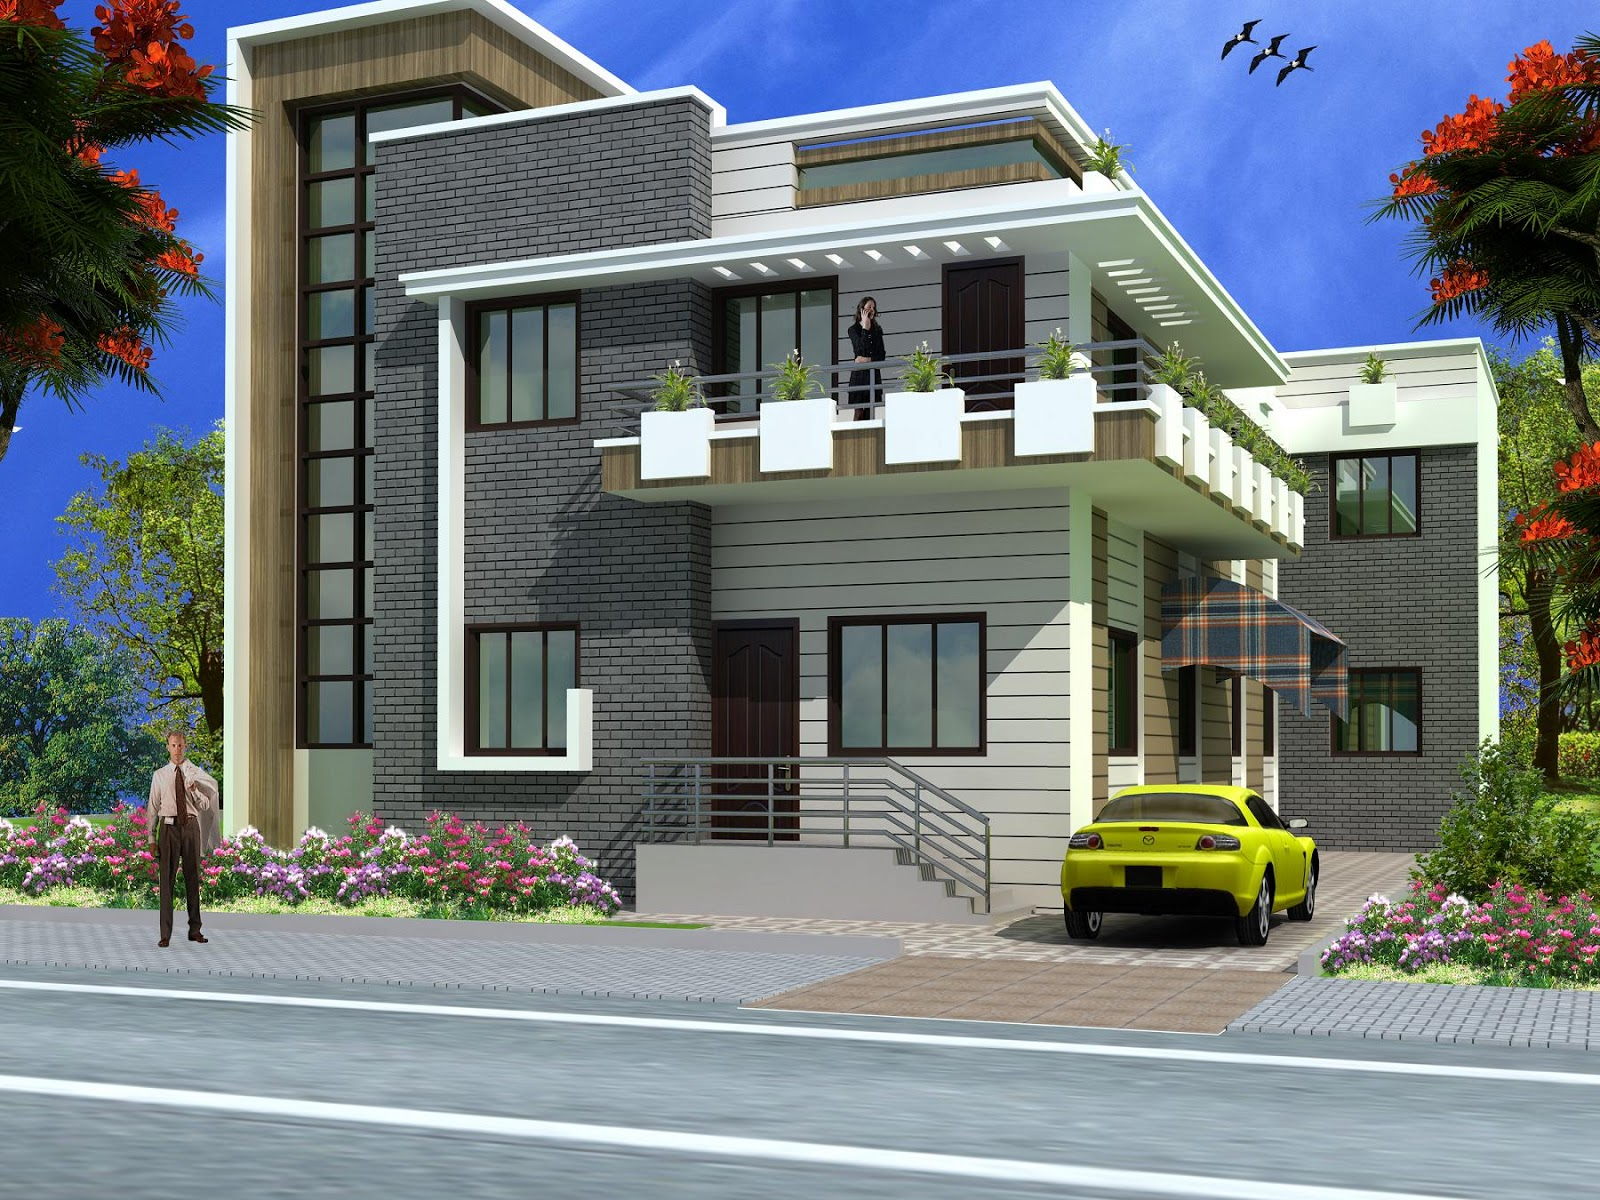 Front elevation of house design in india - House and home design